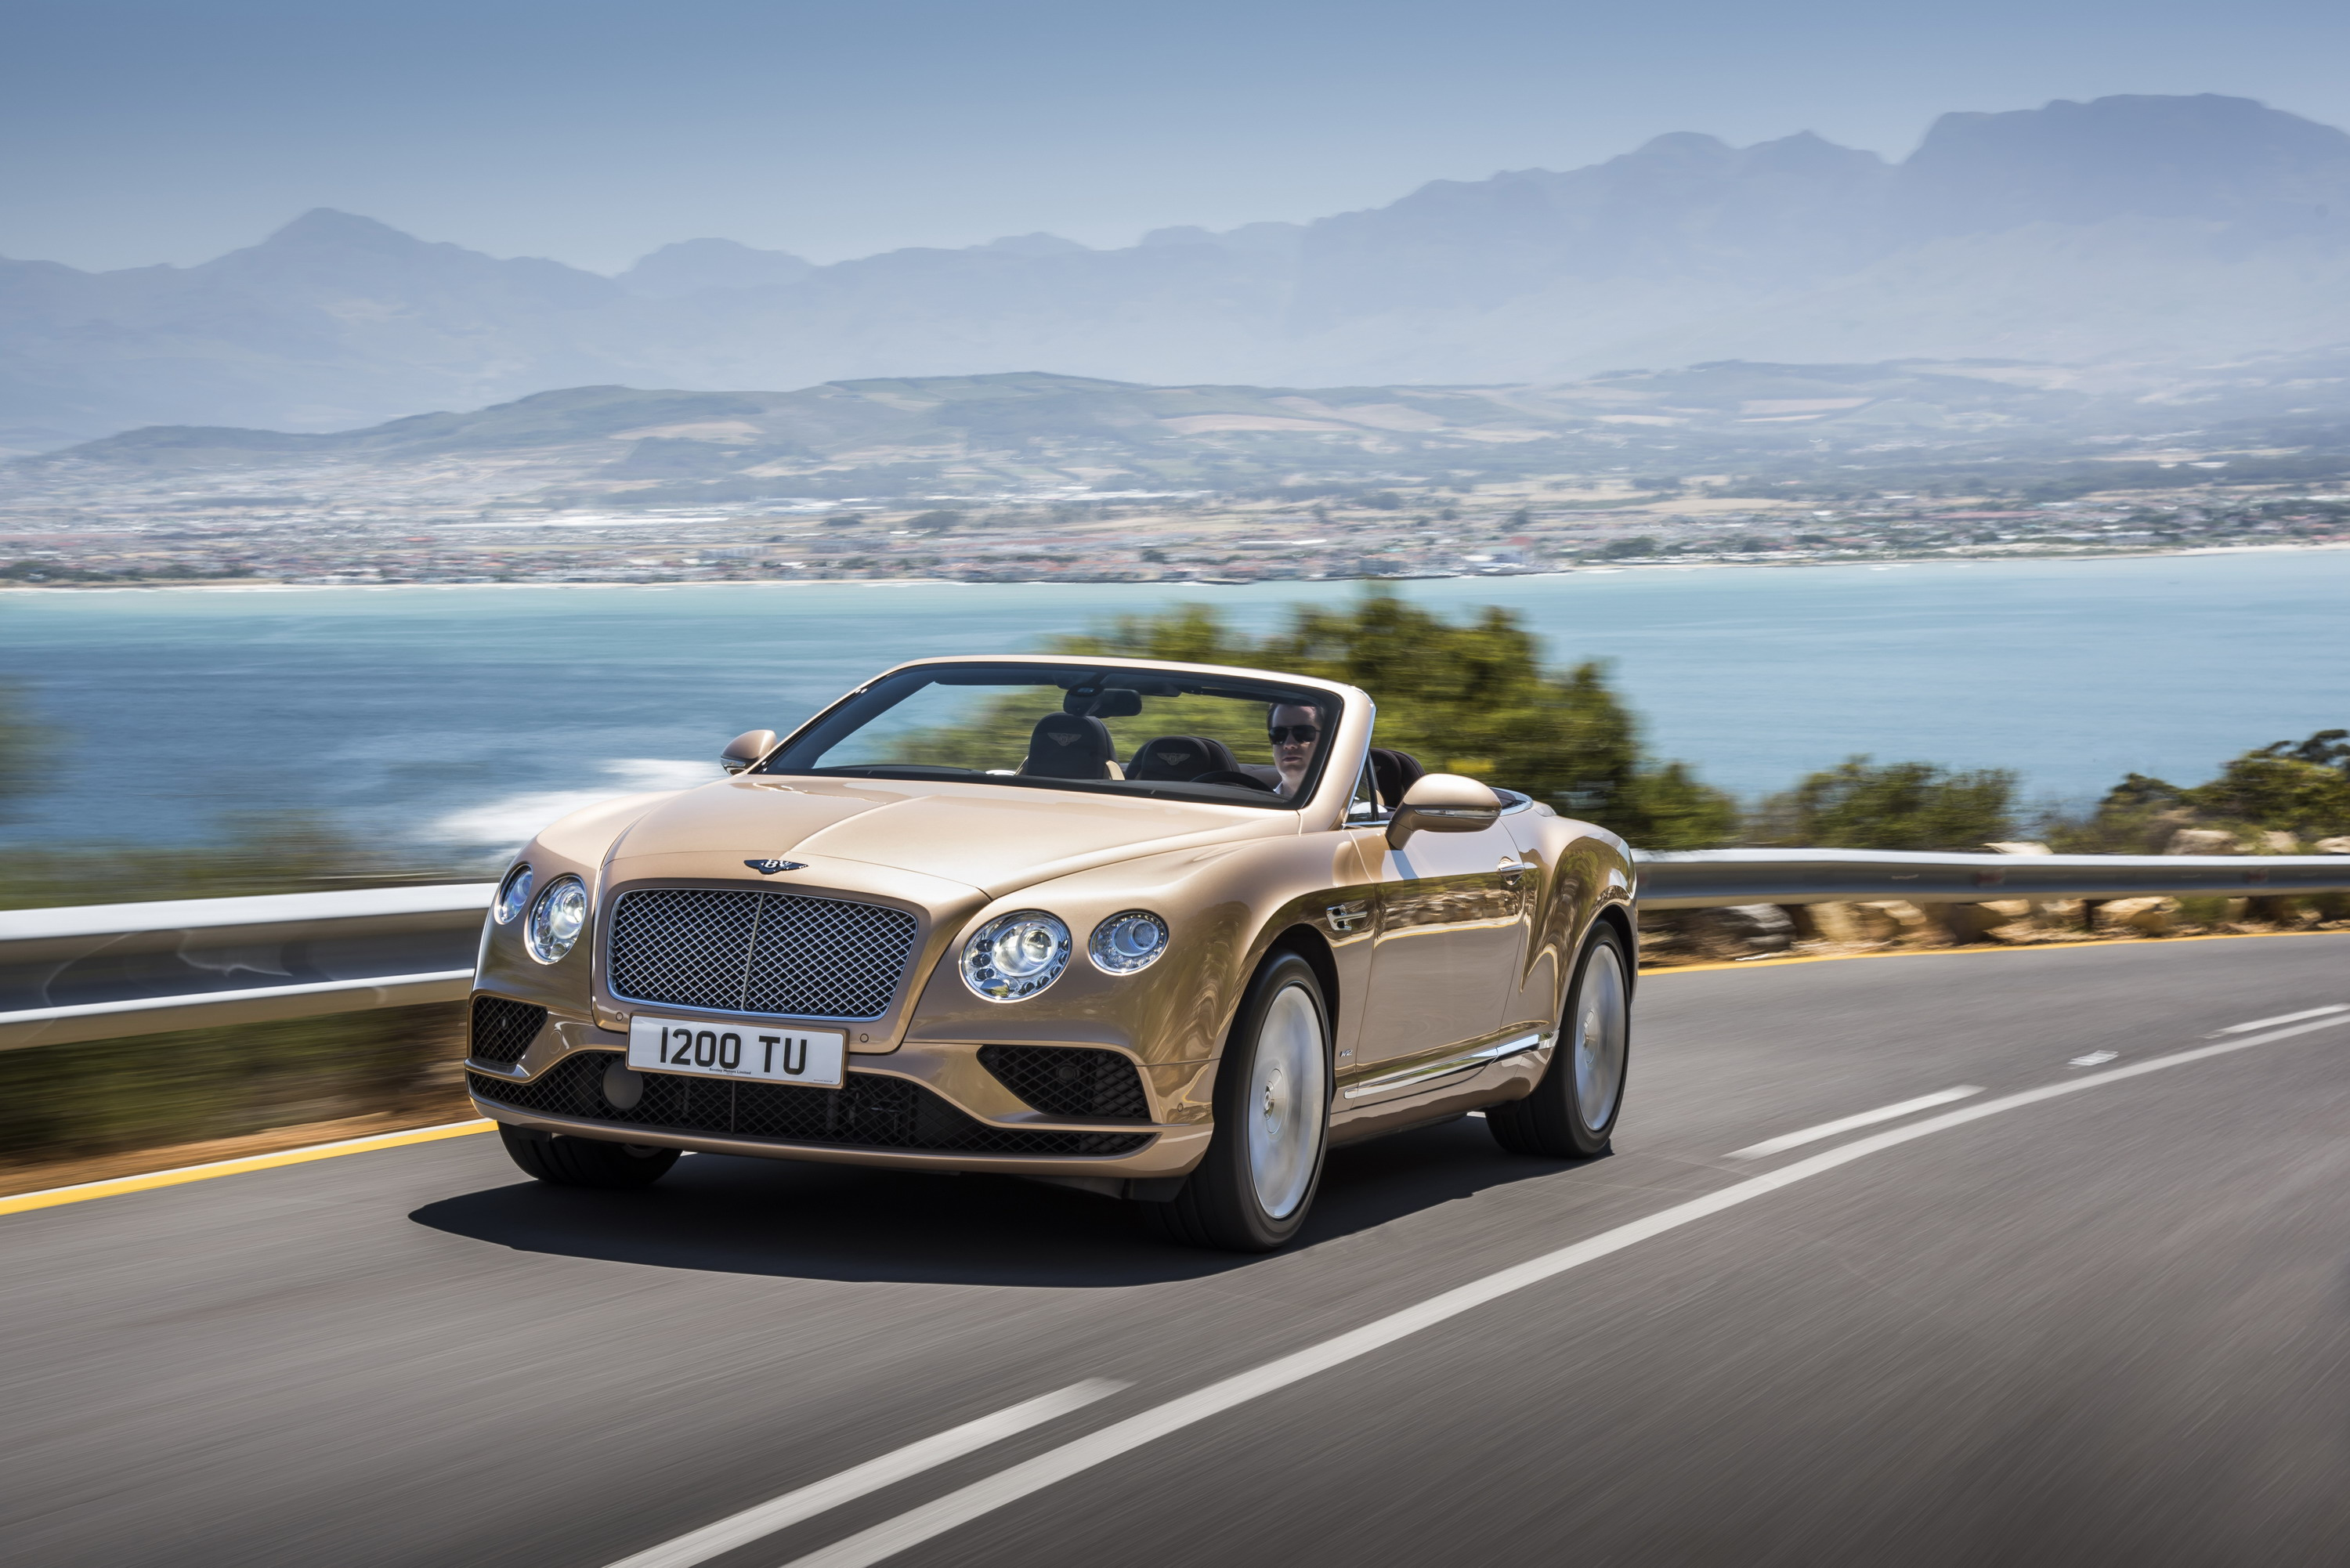 the car makeover speed bentley a gets what is jet express continental breitling of cost gt auto